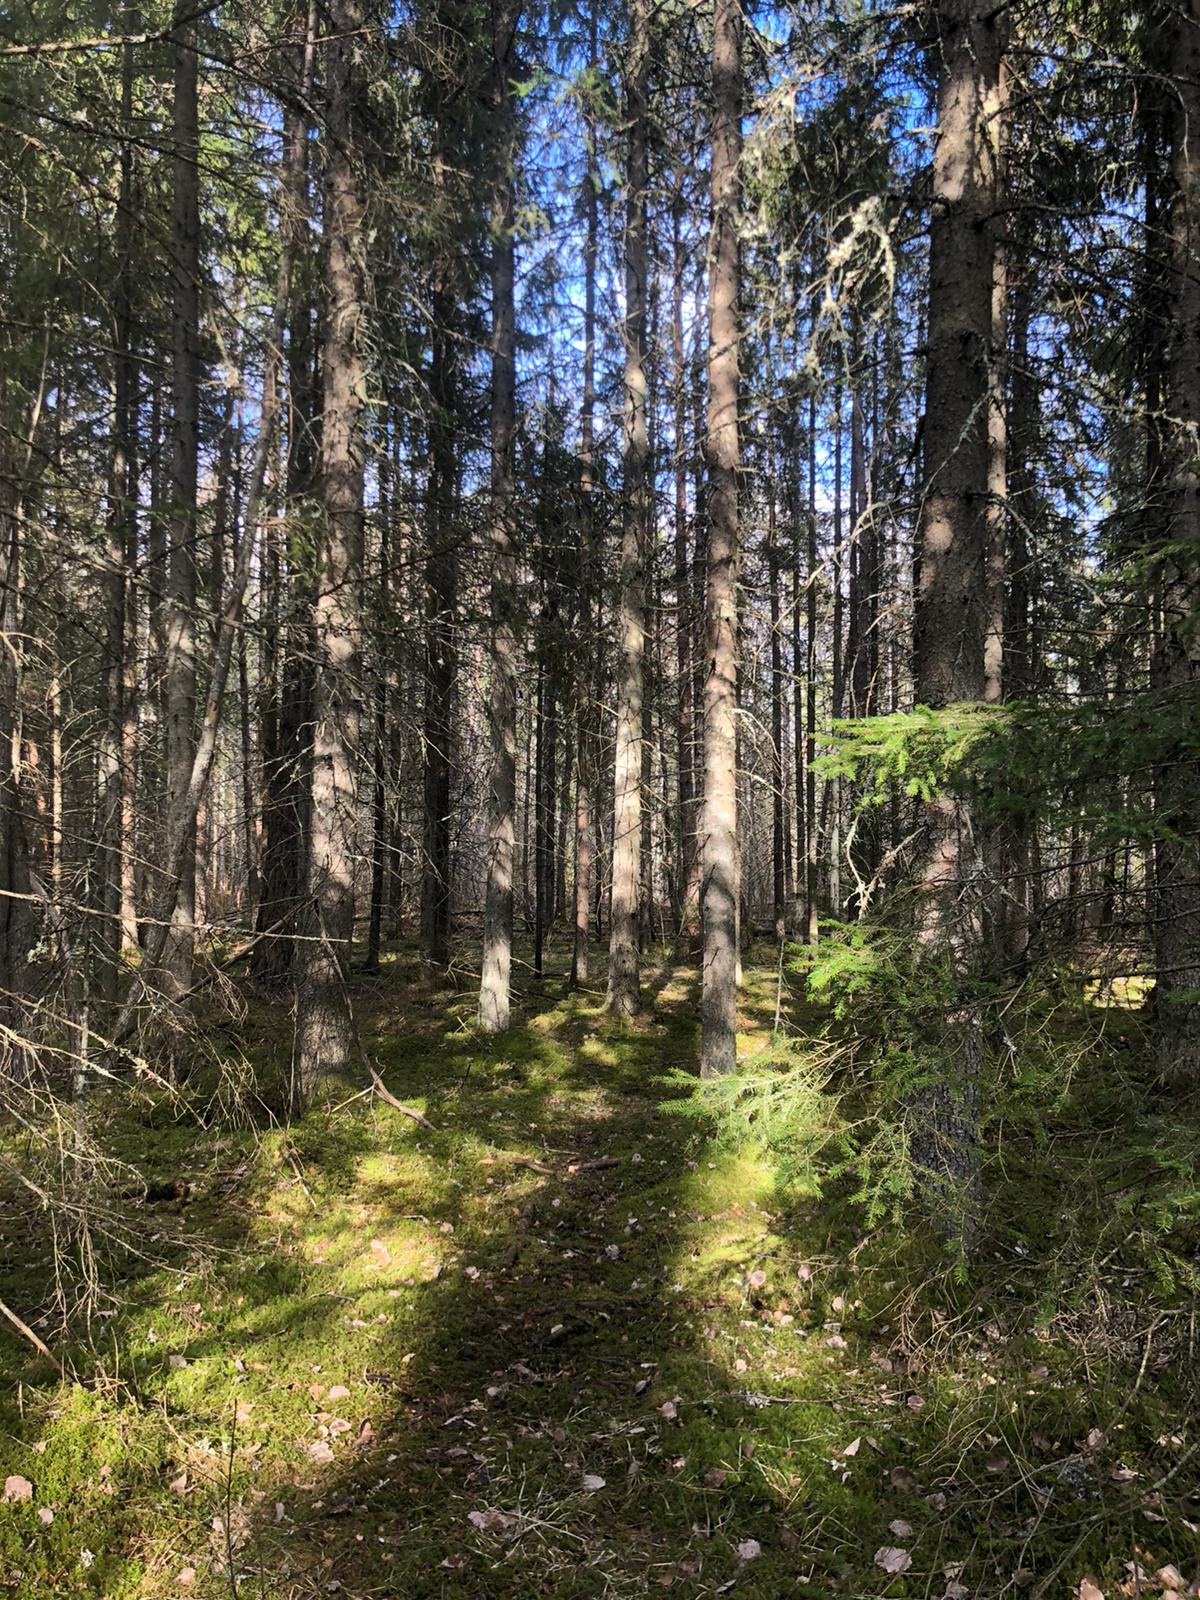 shadow in forest during daytime